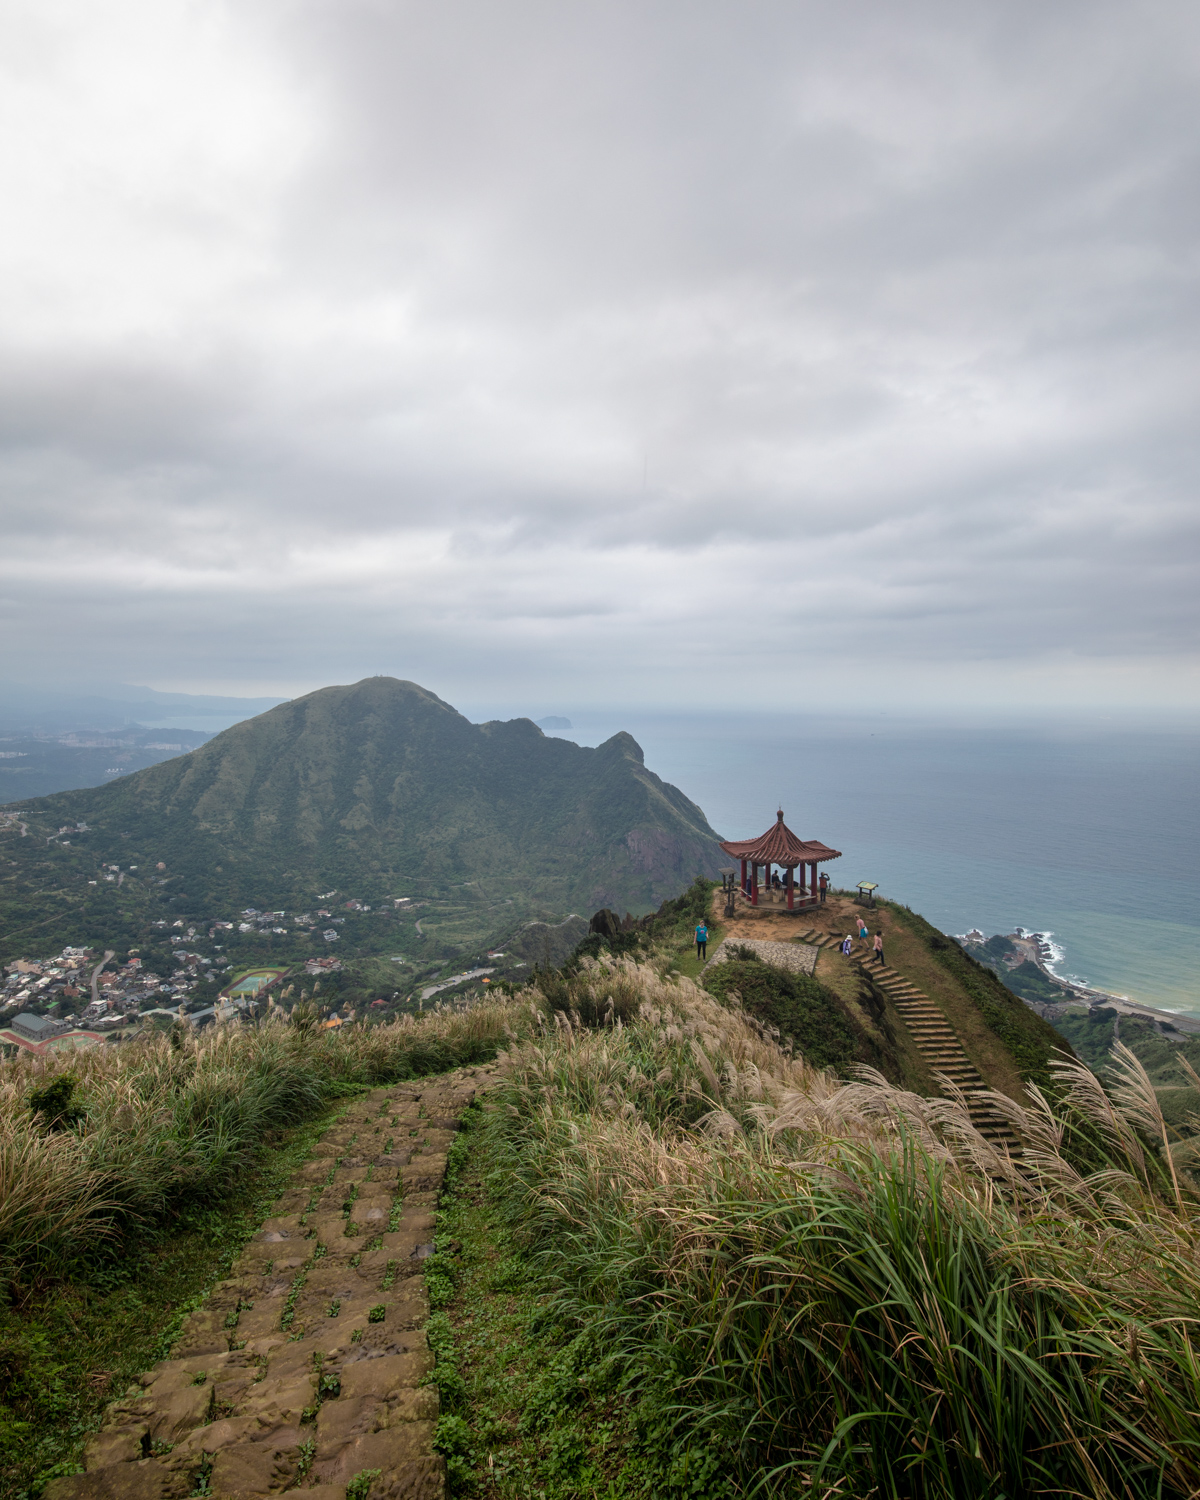 The views from Teapot Mountain in Jiufen